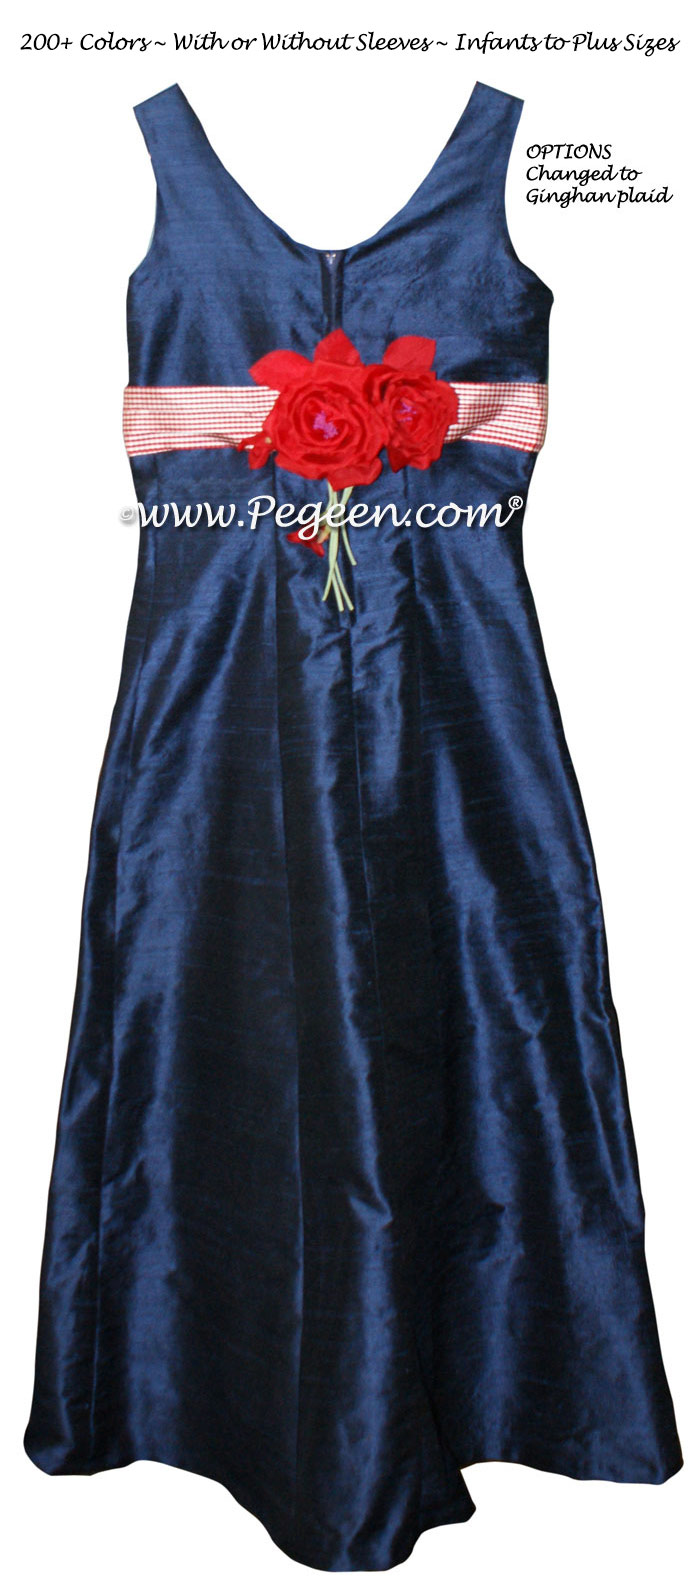 Jr Bridesmaids Dresses - Style 320 Navy and Red Gingham Silk | Pegeen